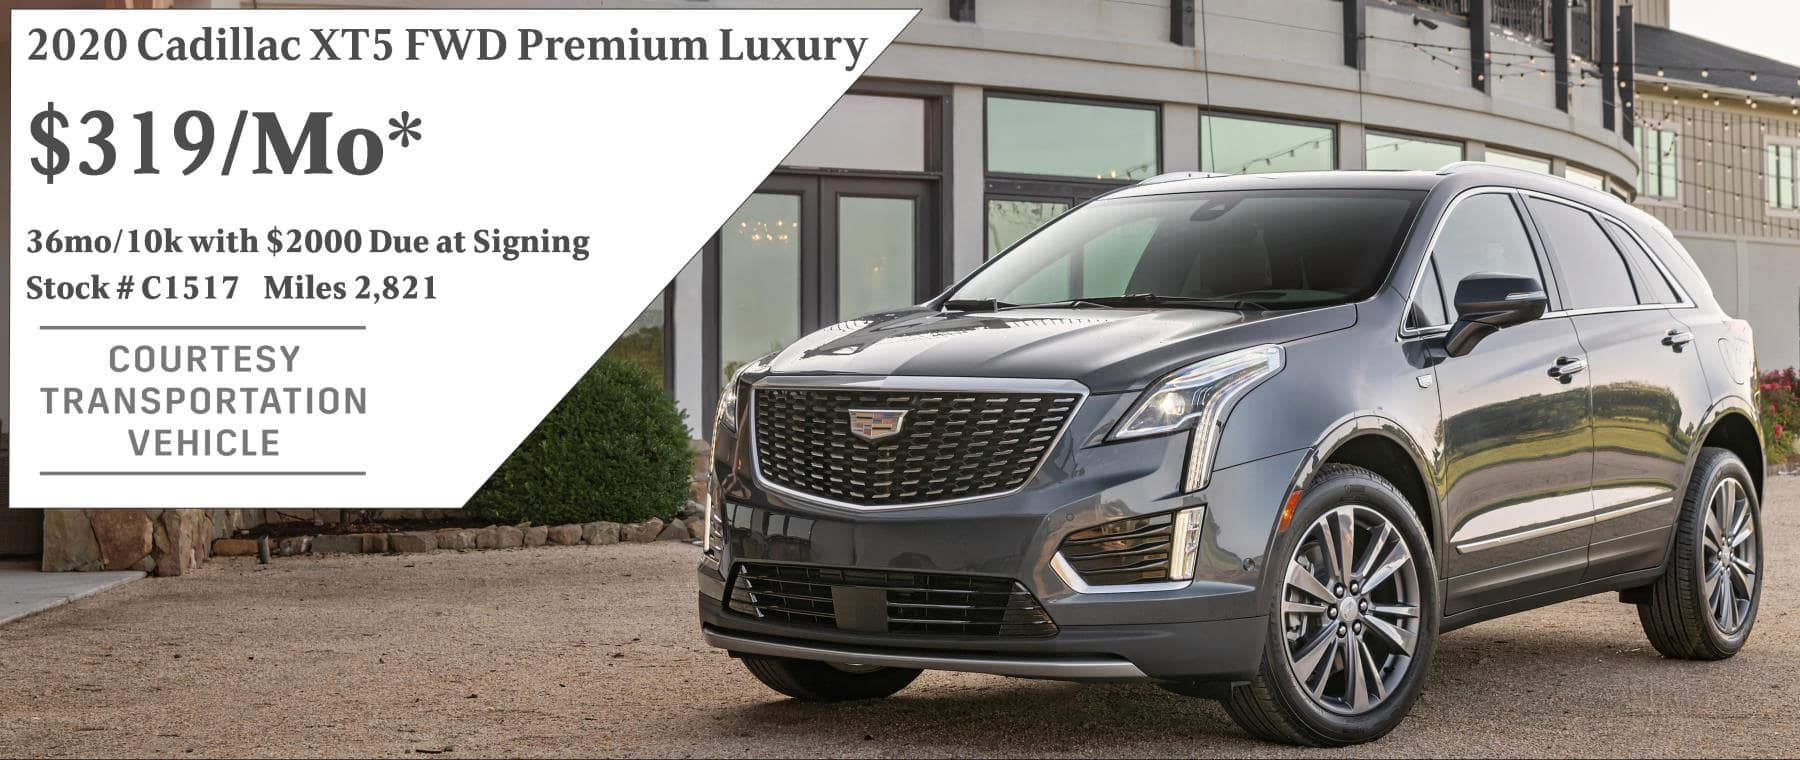 September 2020 XT5 Lease Offer $319/mo